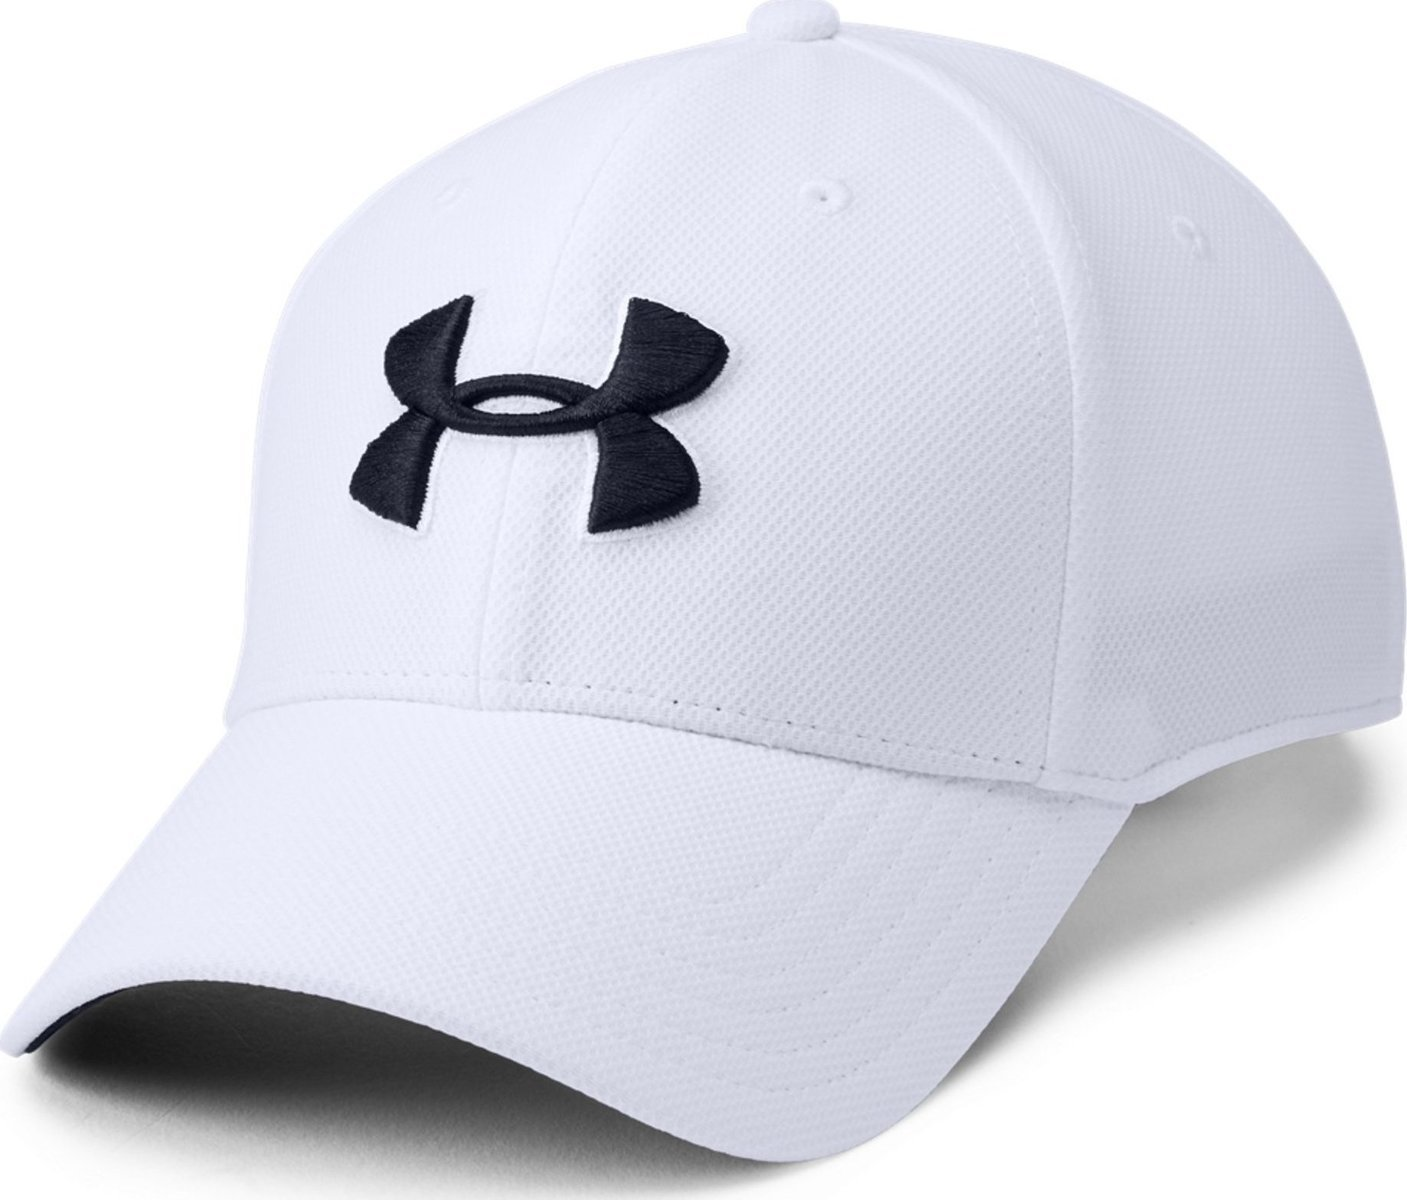 Under Armour Blitzing 3.0 Cap Baseball sapka